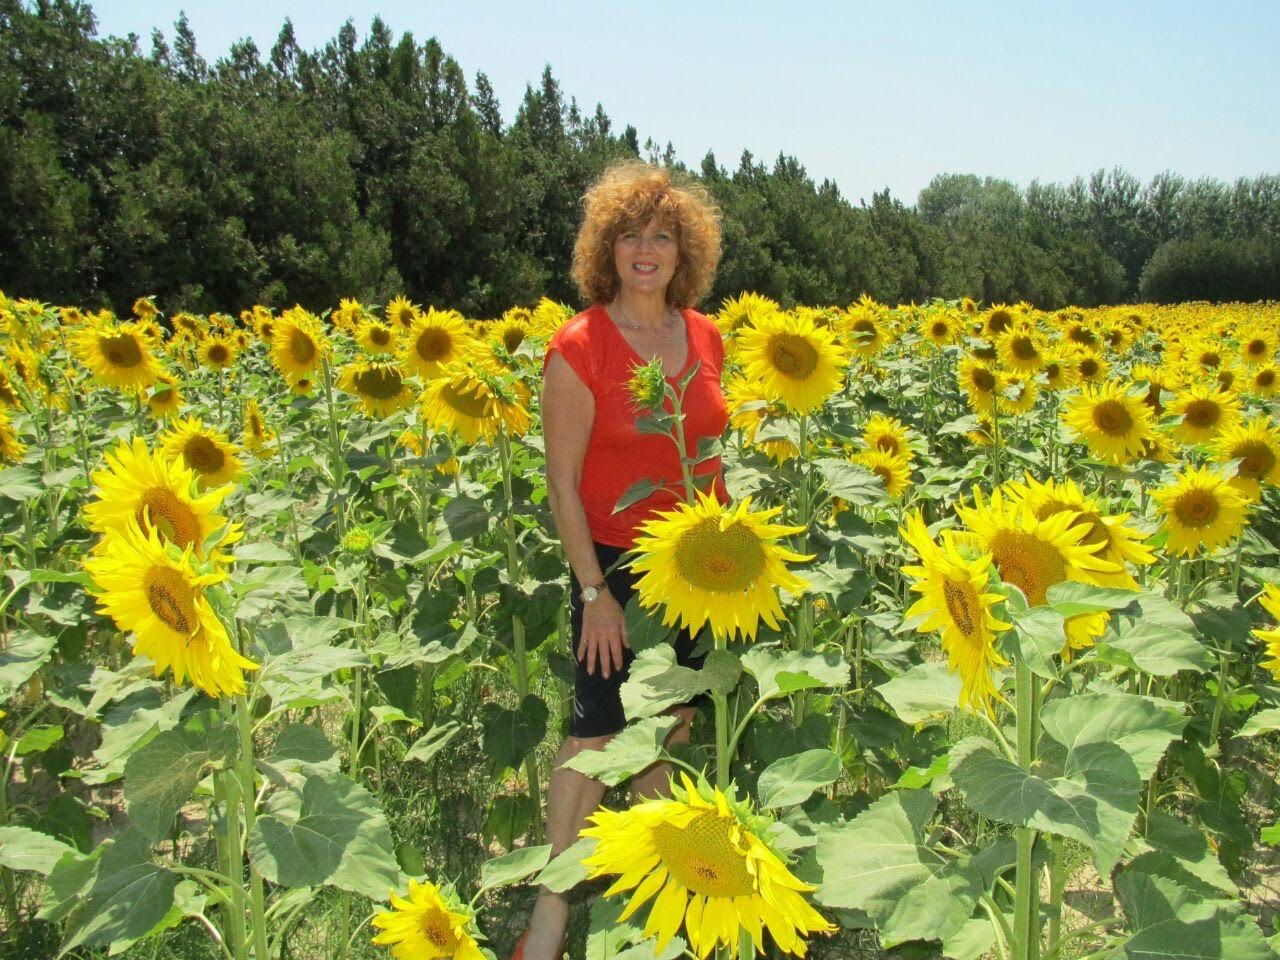 Nicole new Sunflowers